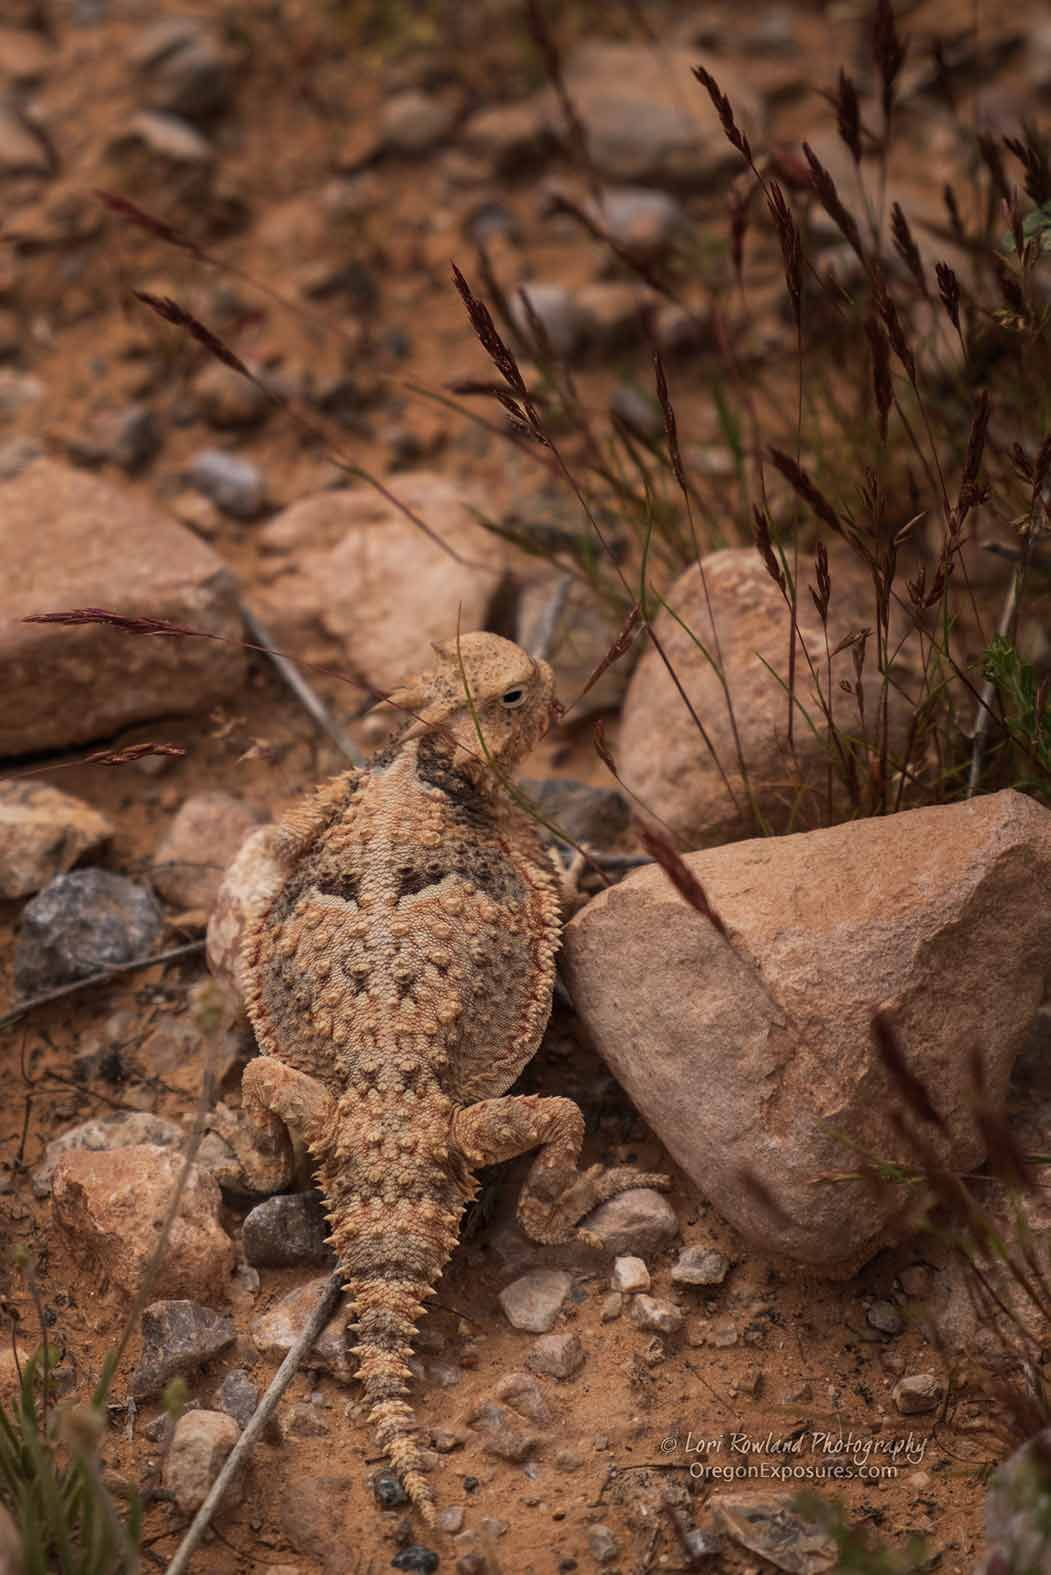 Horned Lizard under a bush.